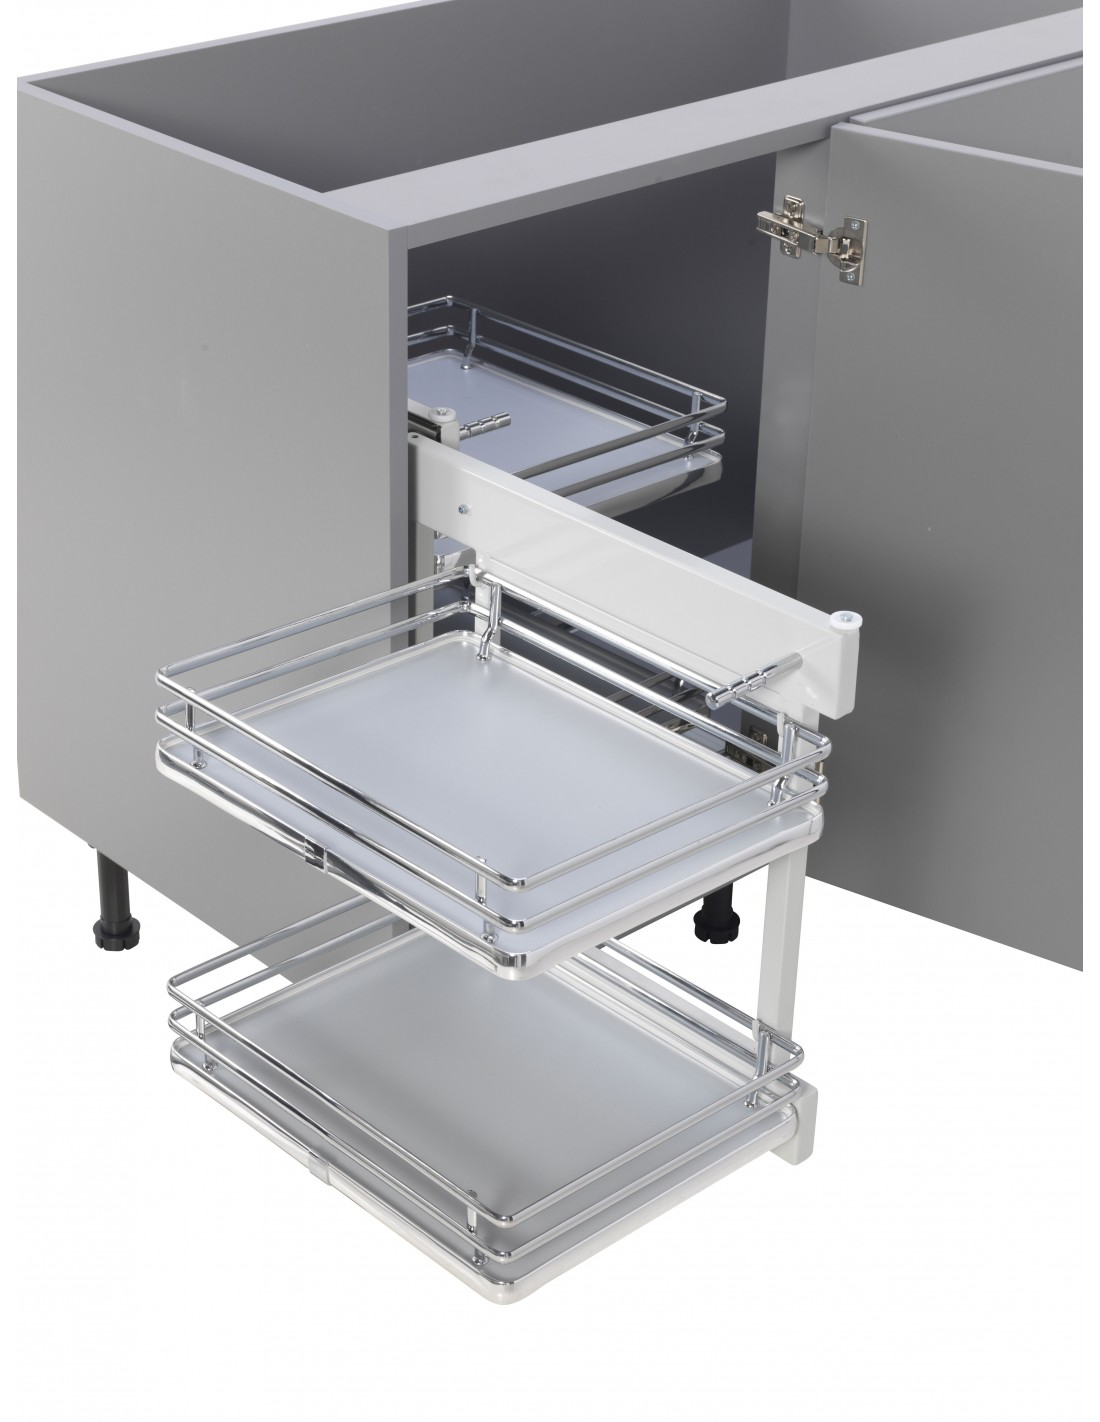 New Innostor Pull Out Corner Shelving Suits 800mm Corner